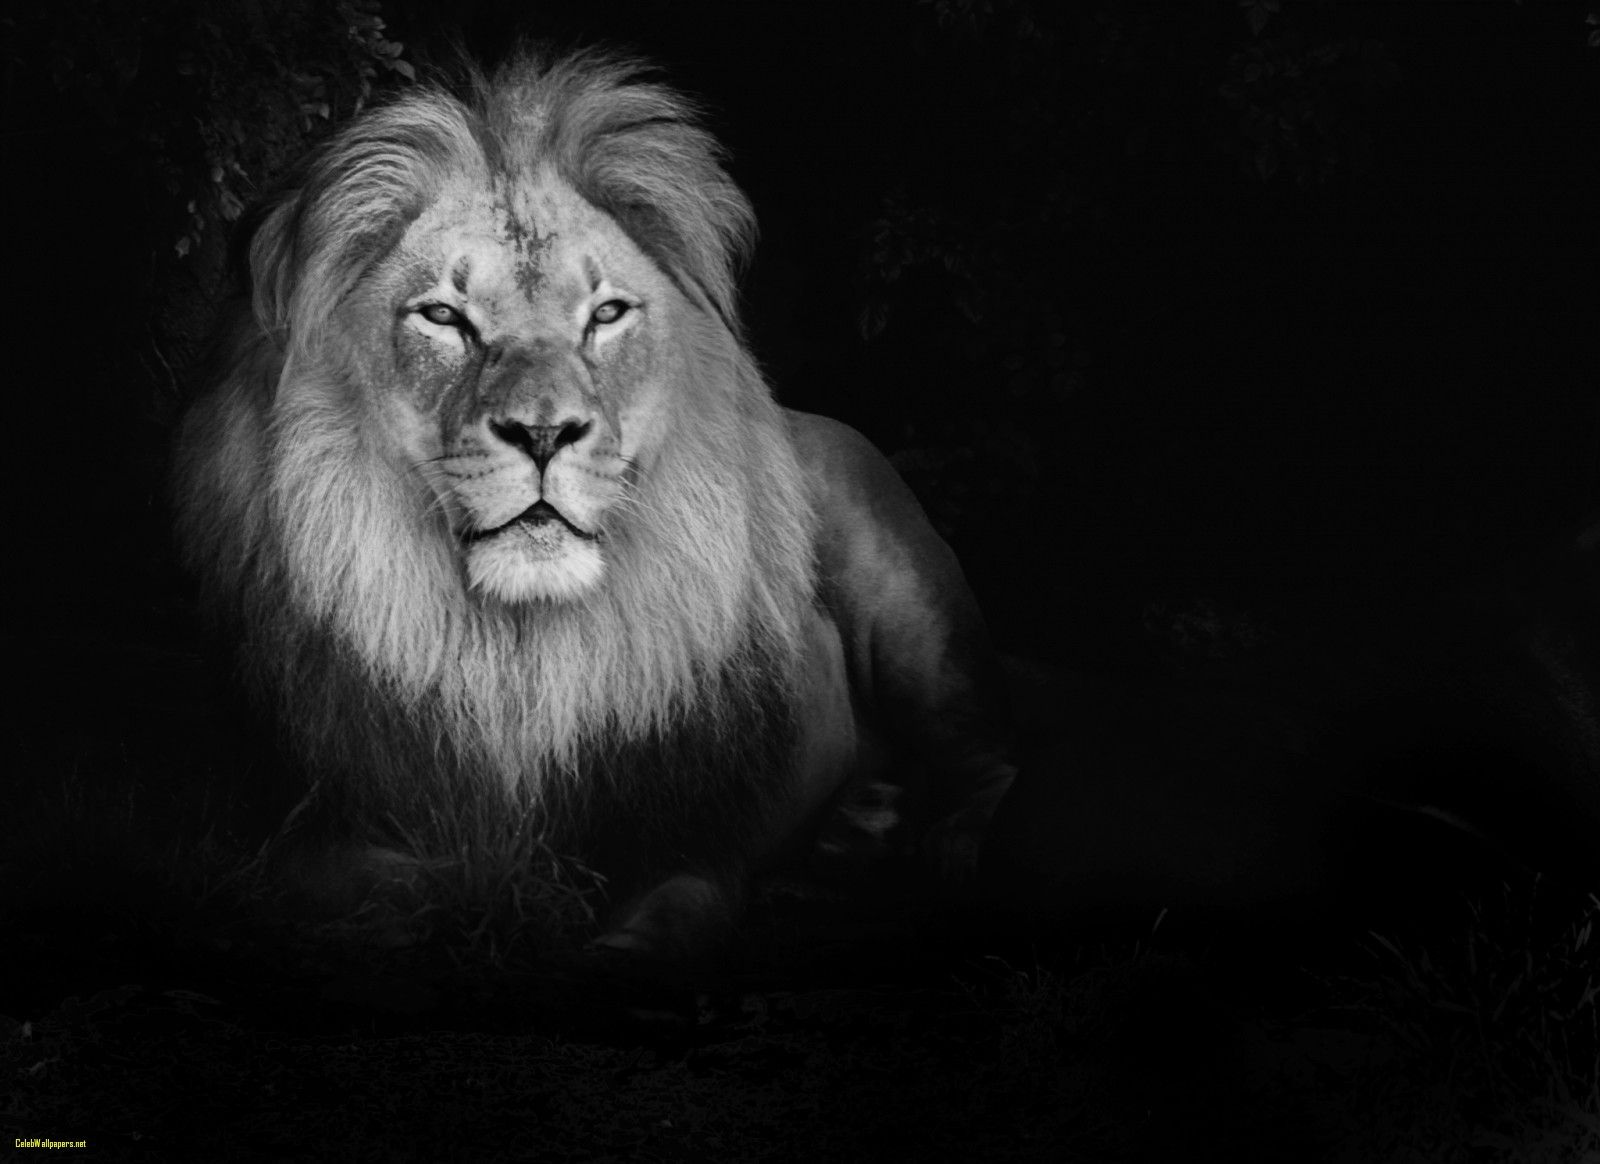 Black And White Lion Wallpapers Top Free Black And White Lion Backgrounds Wallpaperaccess